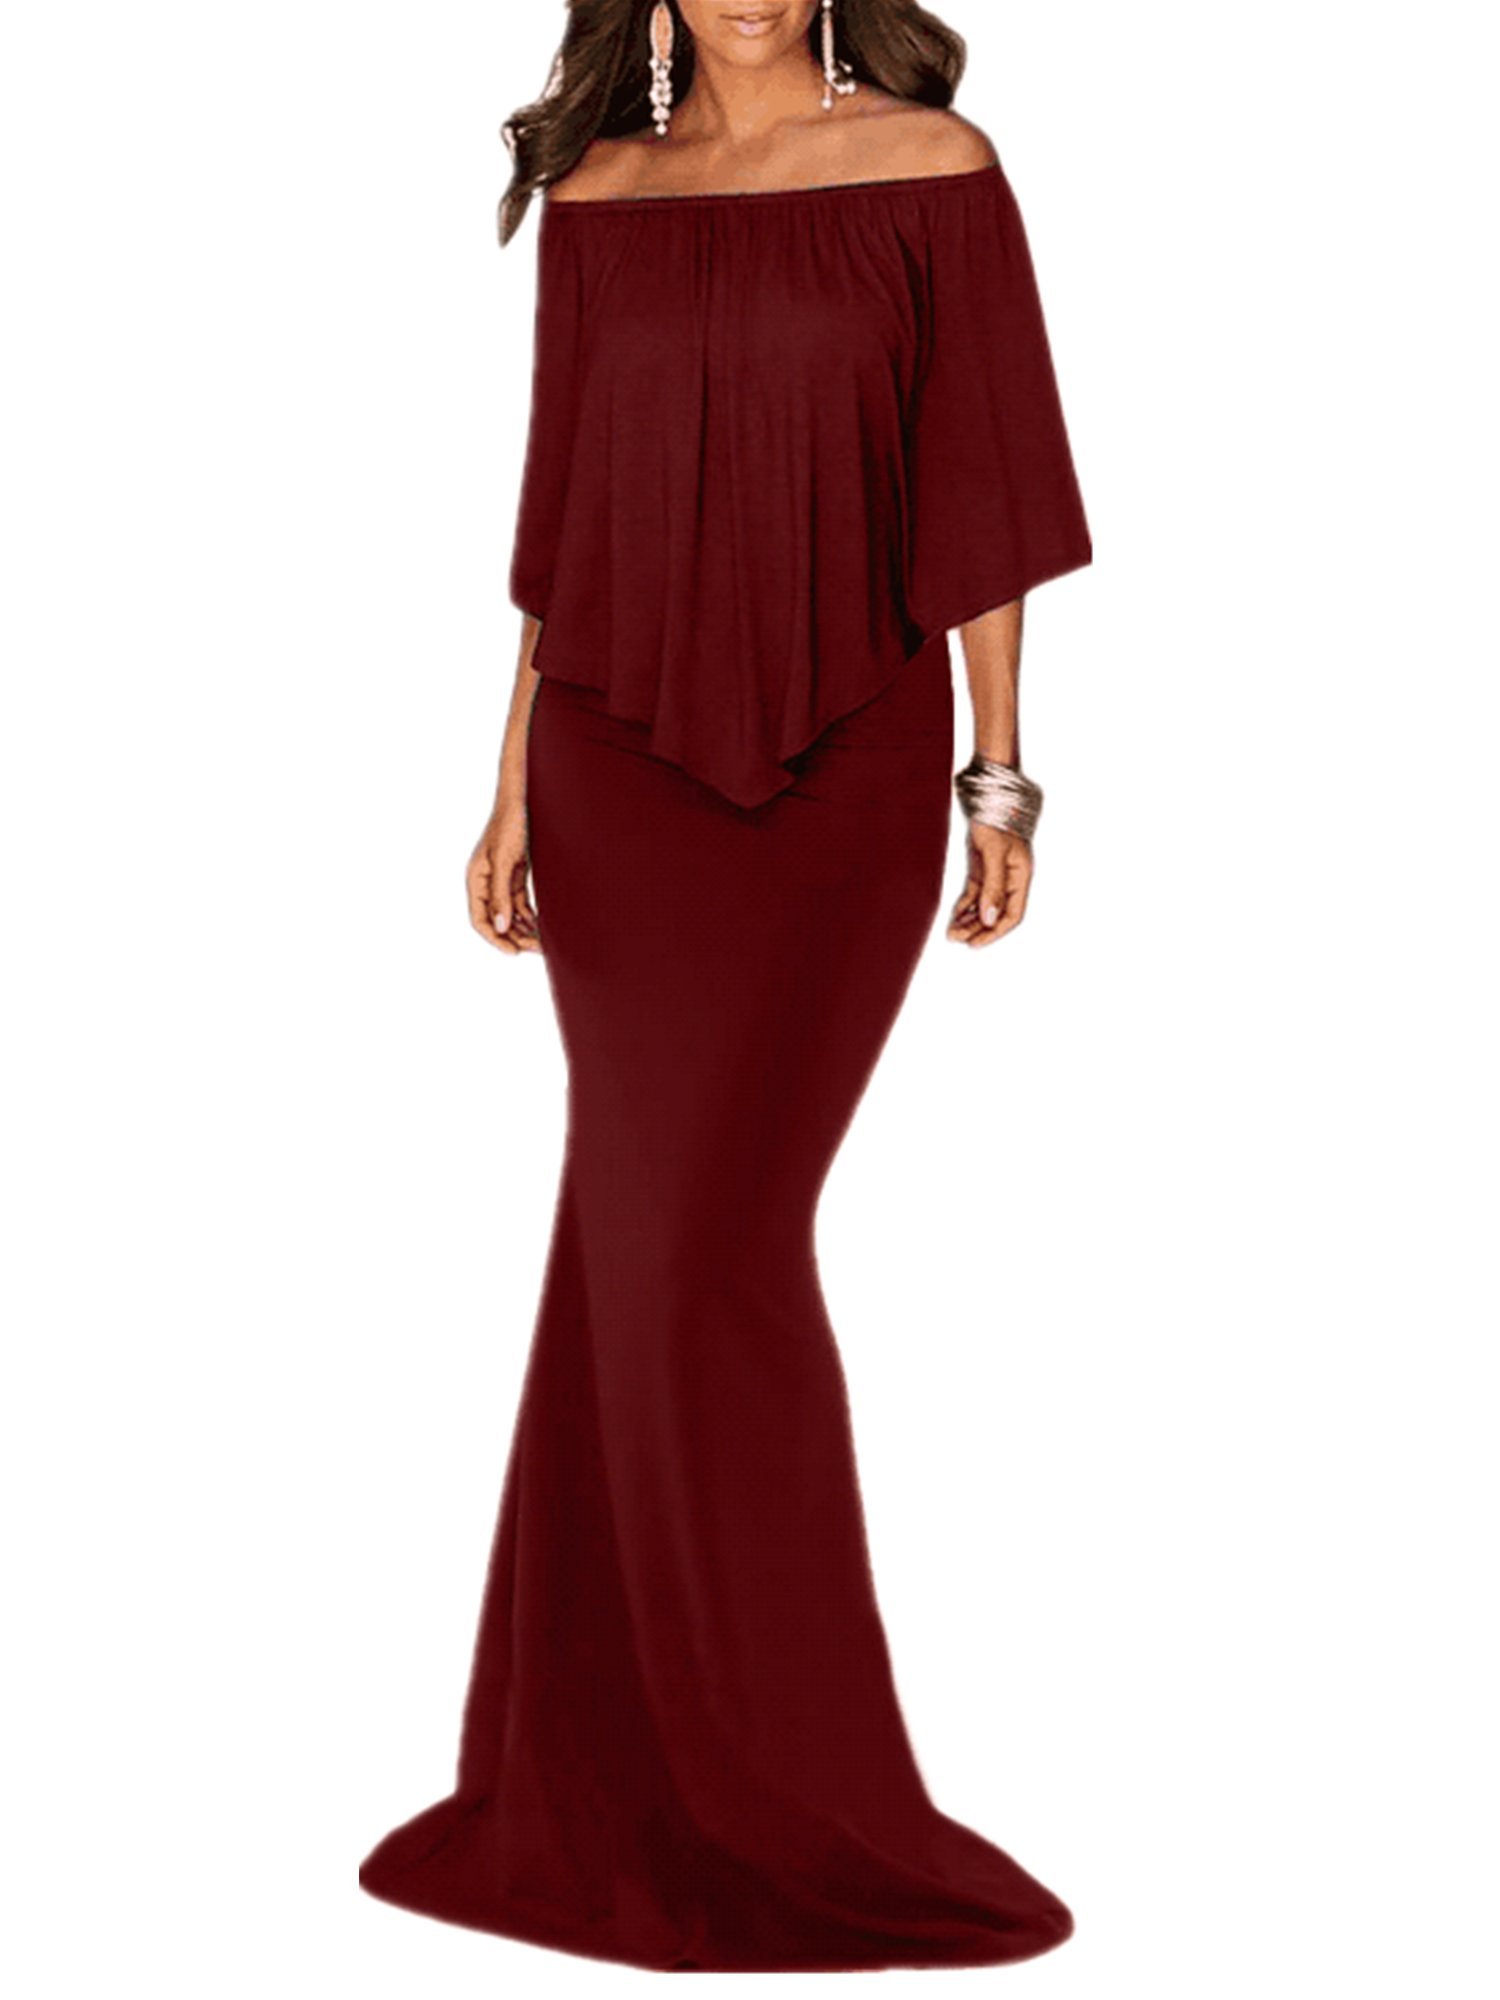 Sidefeel Women Off The Shoulder Ruffled Mermaid Maxi Party Dress Small Burgundy